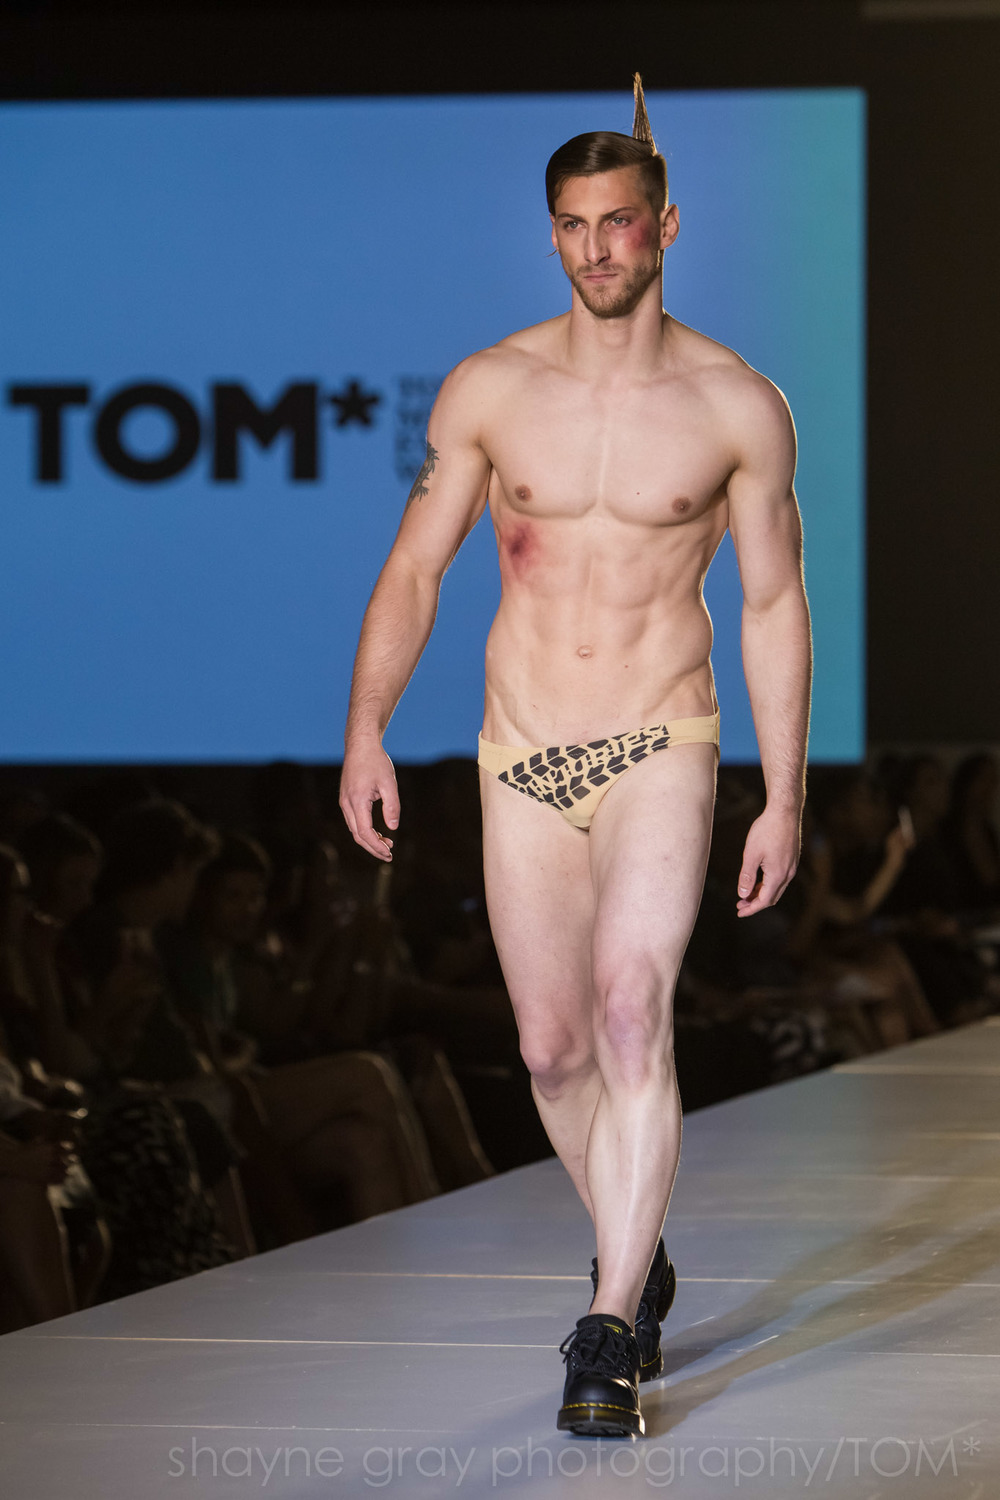 Shayne-Gray-Toronto-men's-fashion_week-TOM-lafaille-7620.jpg